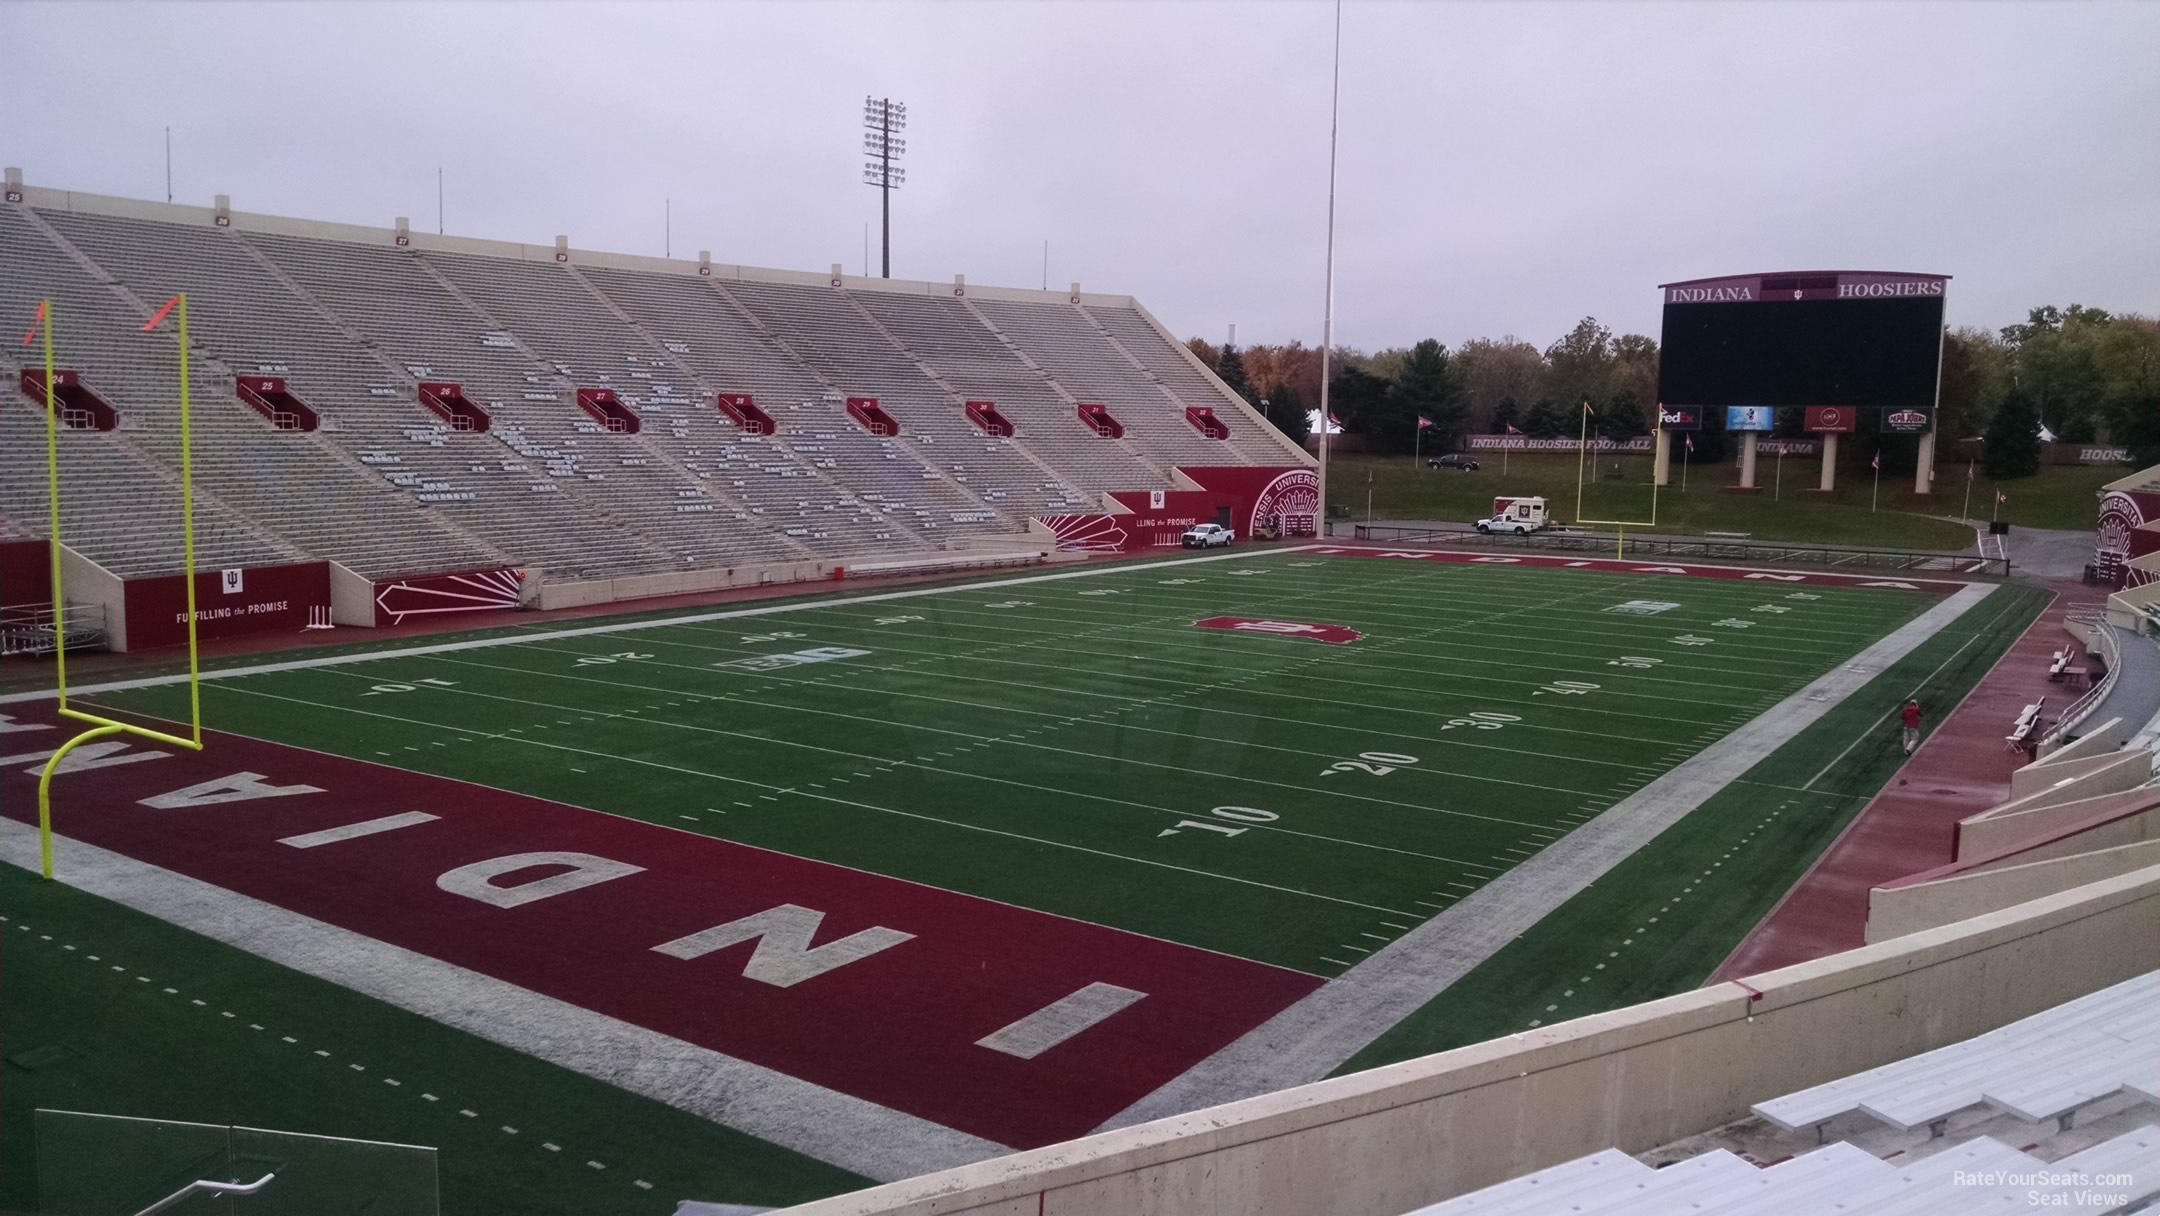 Seat View for Memorial Stadium - IN Section 13, Row 30